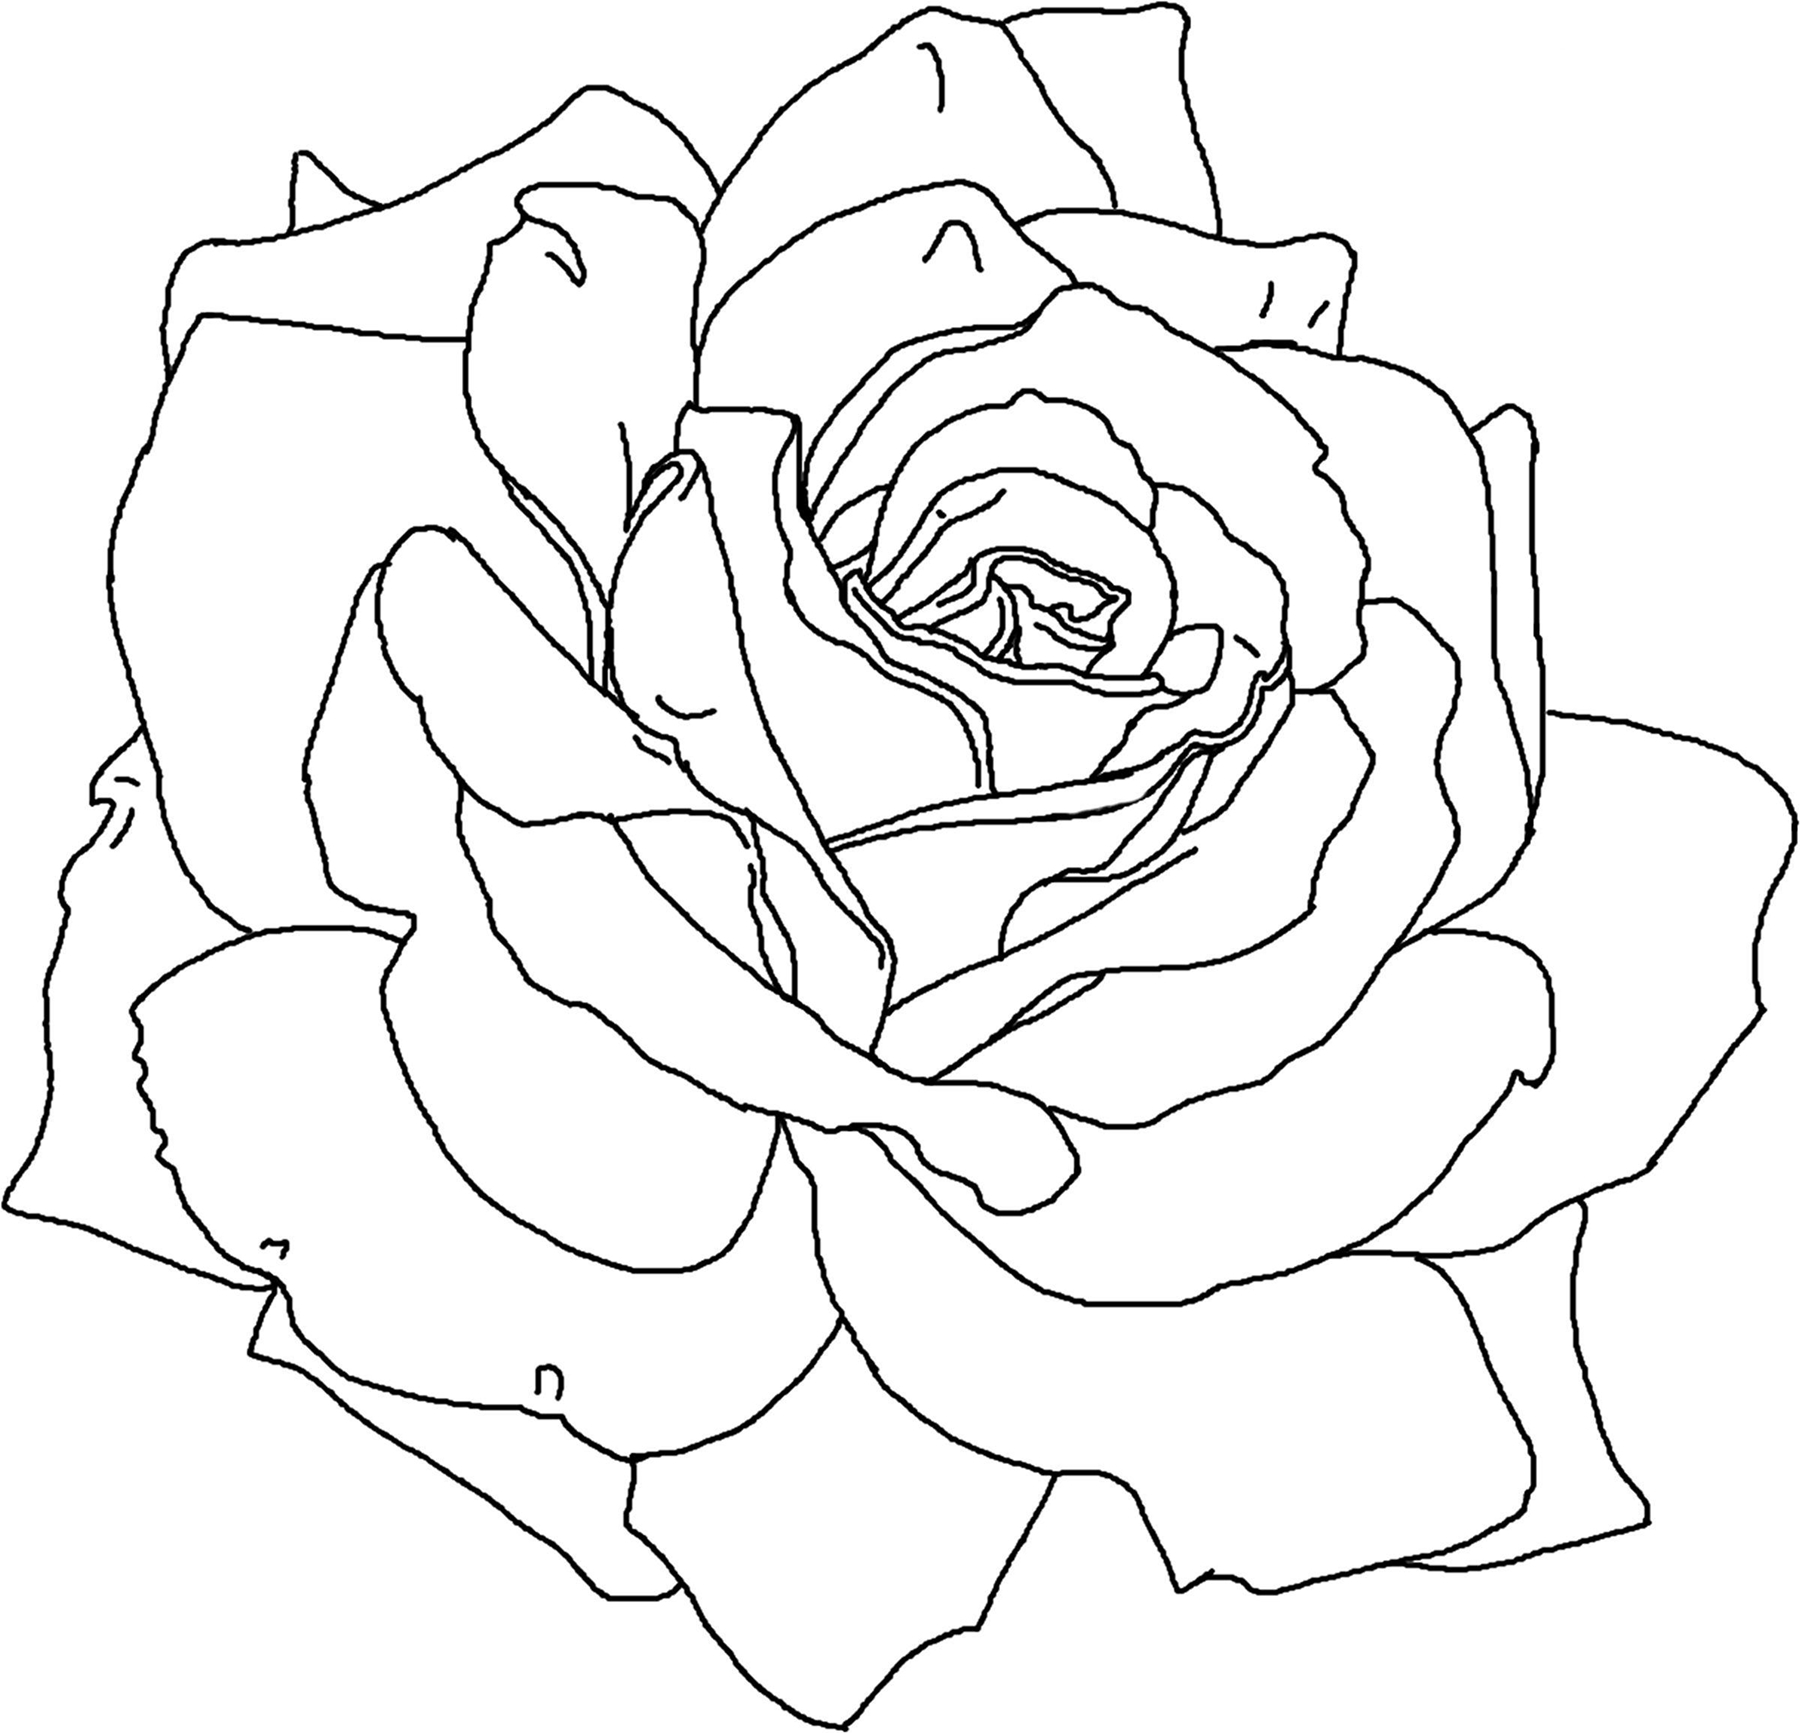 Line Drawing Of A Rose : Free printable flower coloring pages for kids best